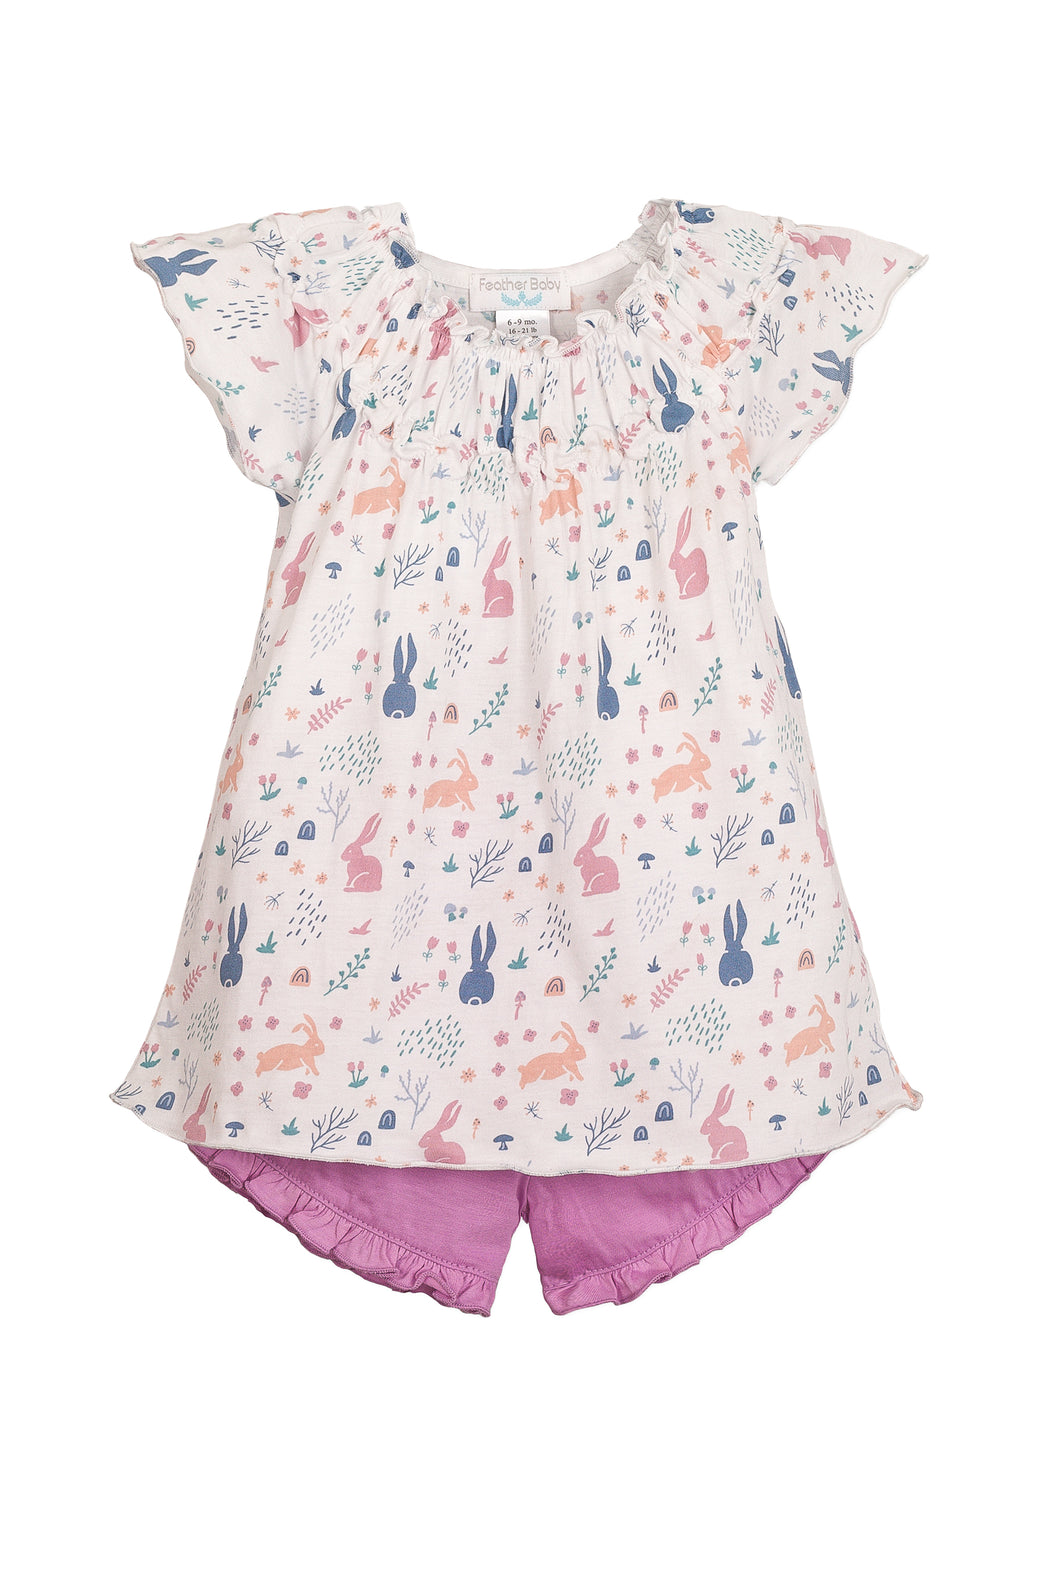 3-6mos - Ruched Tunic + Short Rabbit Hole Pink on White